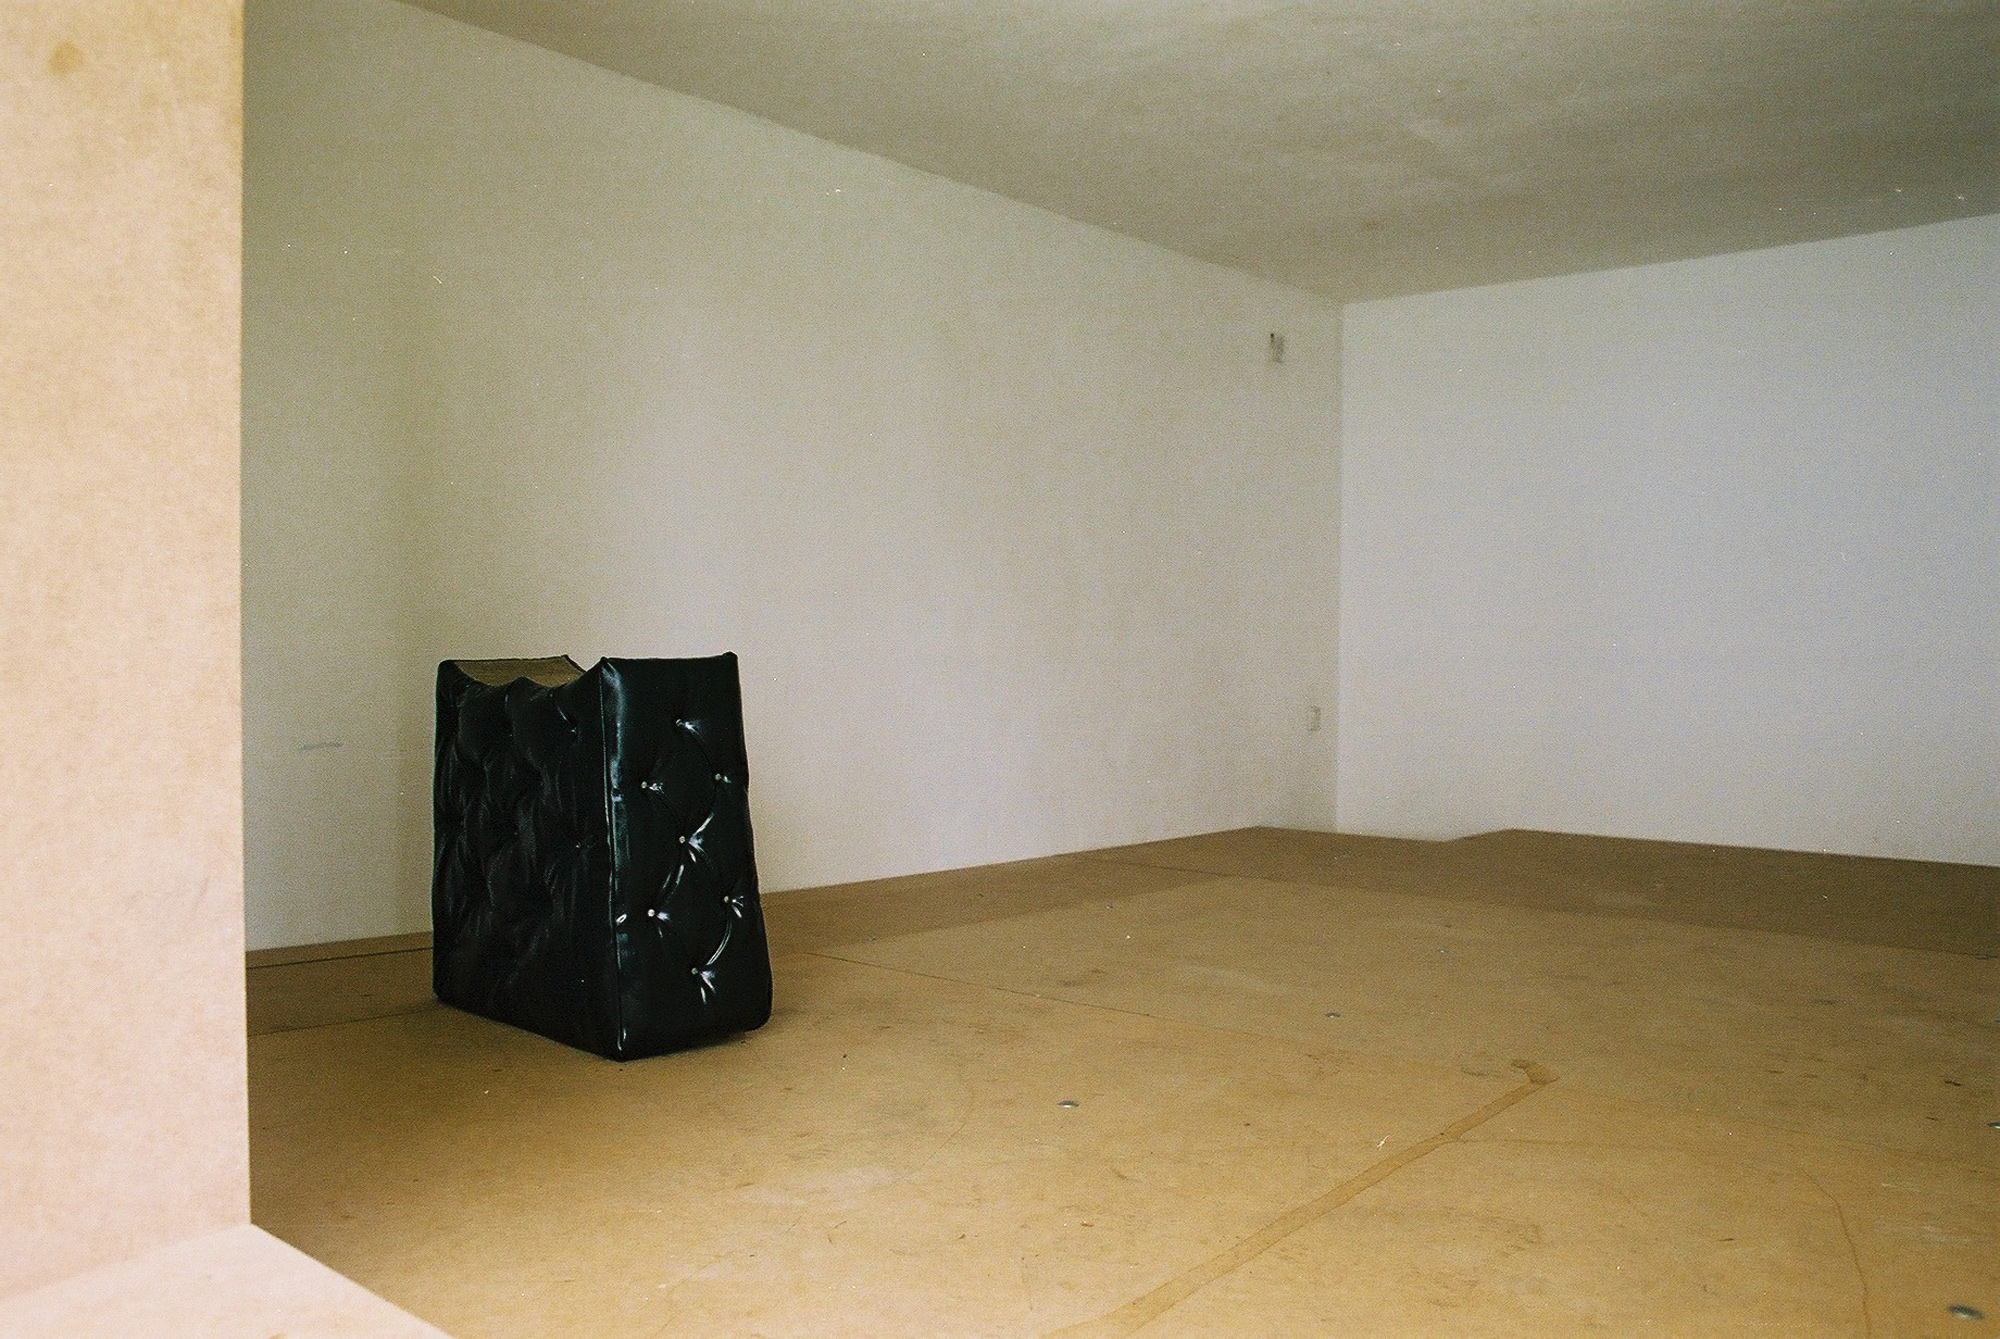 Fachraum 4 │ metal, wood, plastic, cement, fabric │ (installation view) │ 2014 │ ca. 10qm